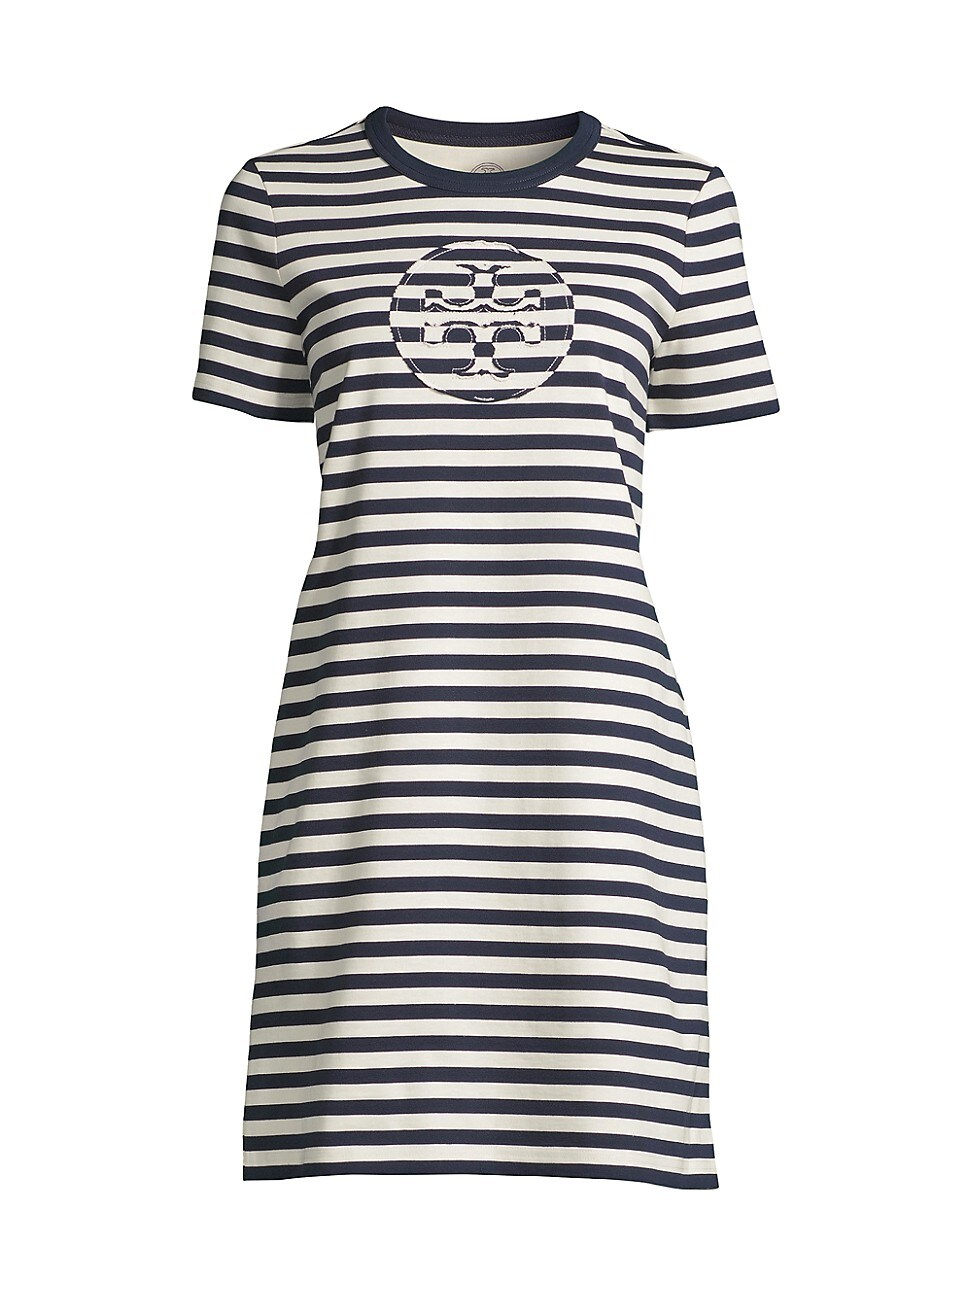 Tory Burch WOMEN'S STRIPED LOGO T-SHIRT DRESS